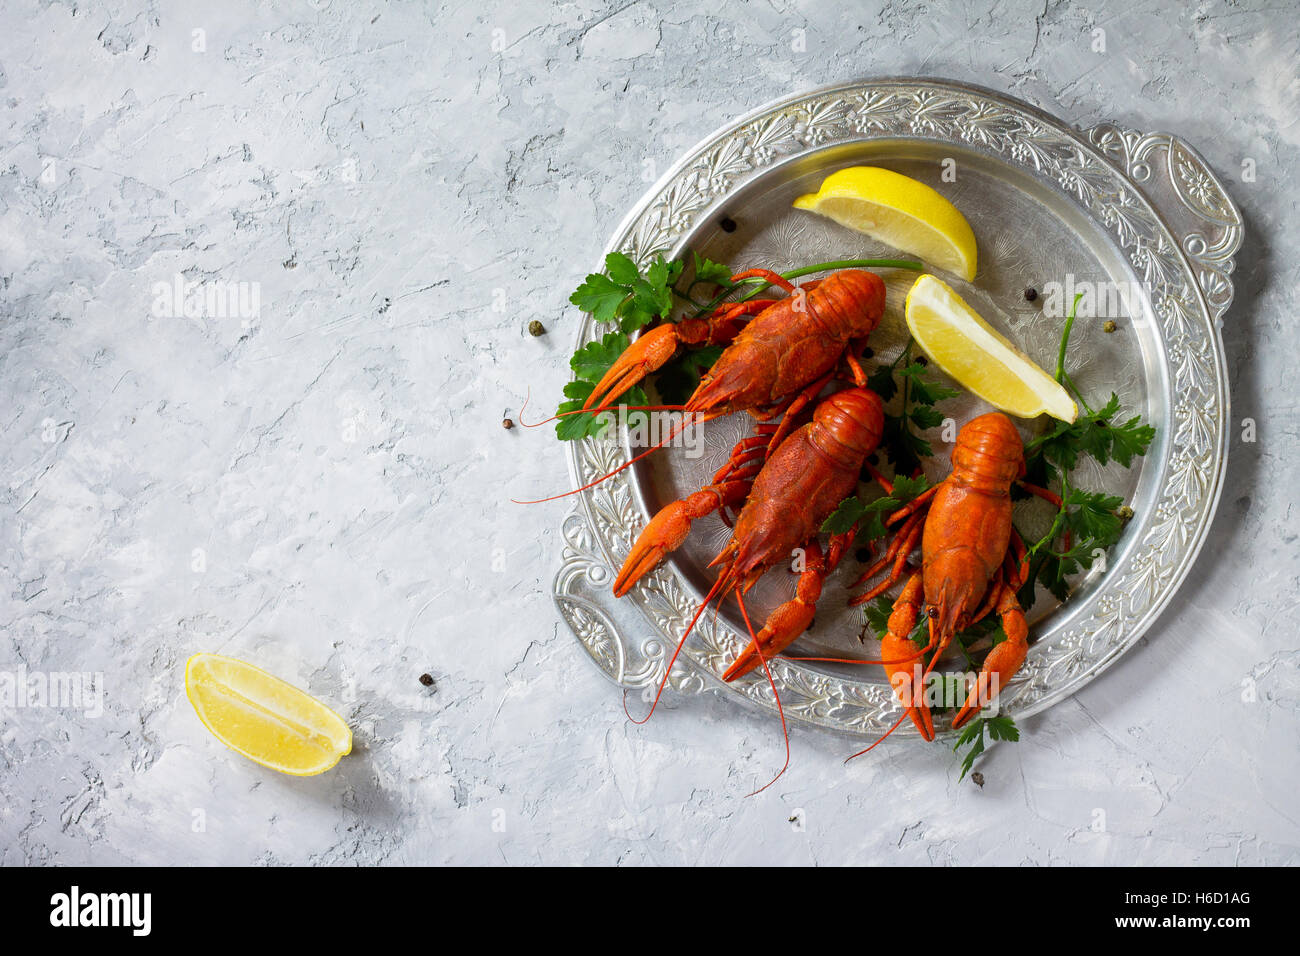 Boiled crawfish, lemon and parsley on a concrete background. Food background. The concept of healthy eating. Top - Stock Image